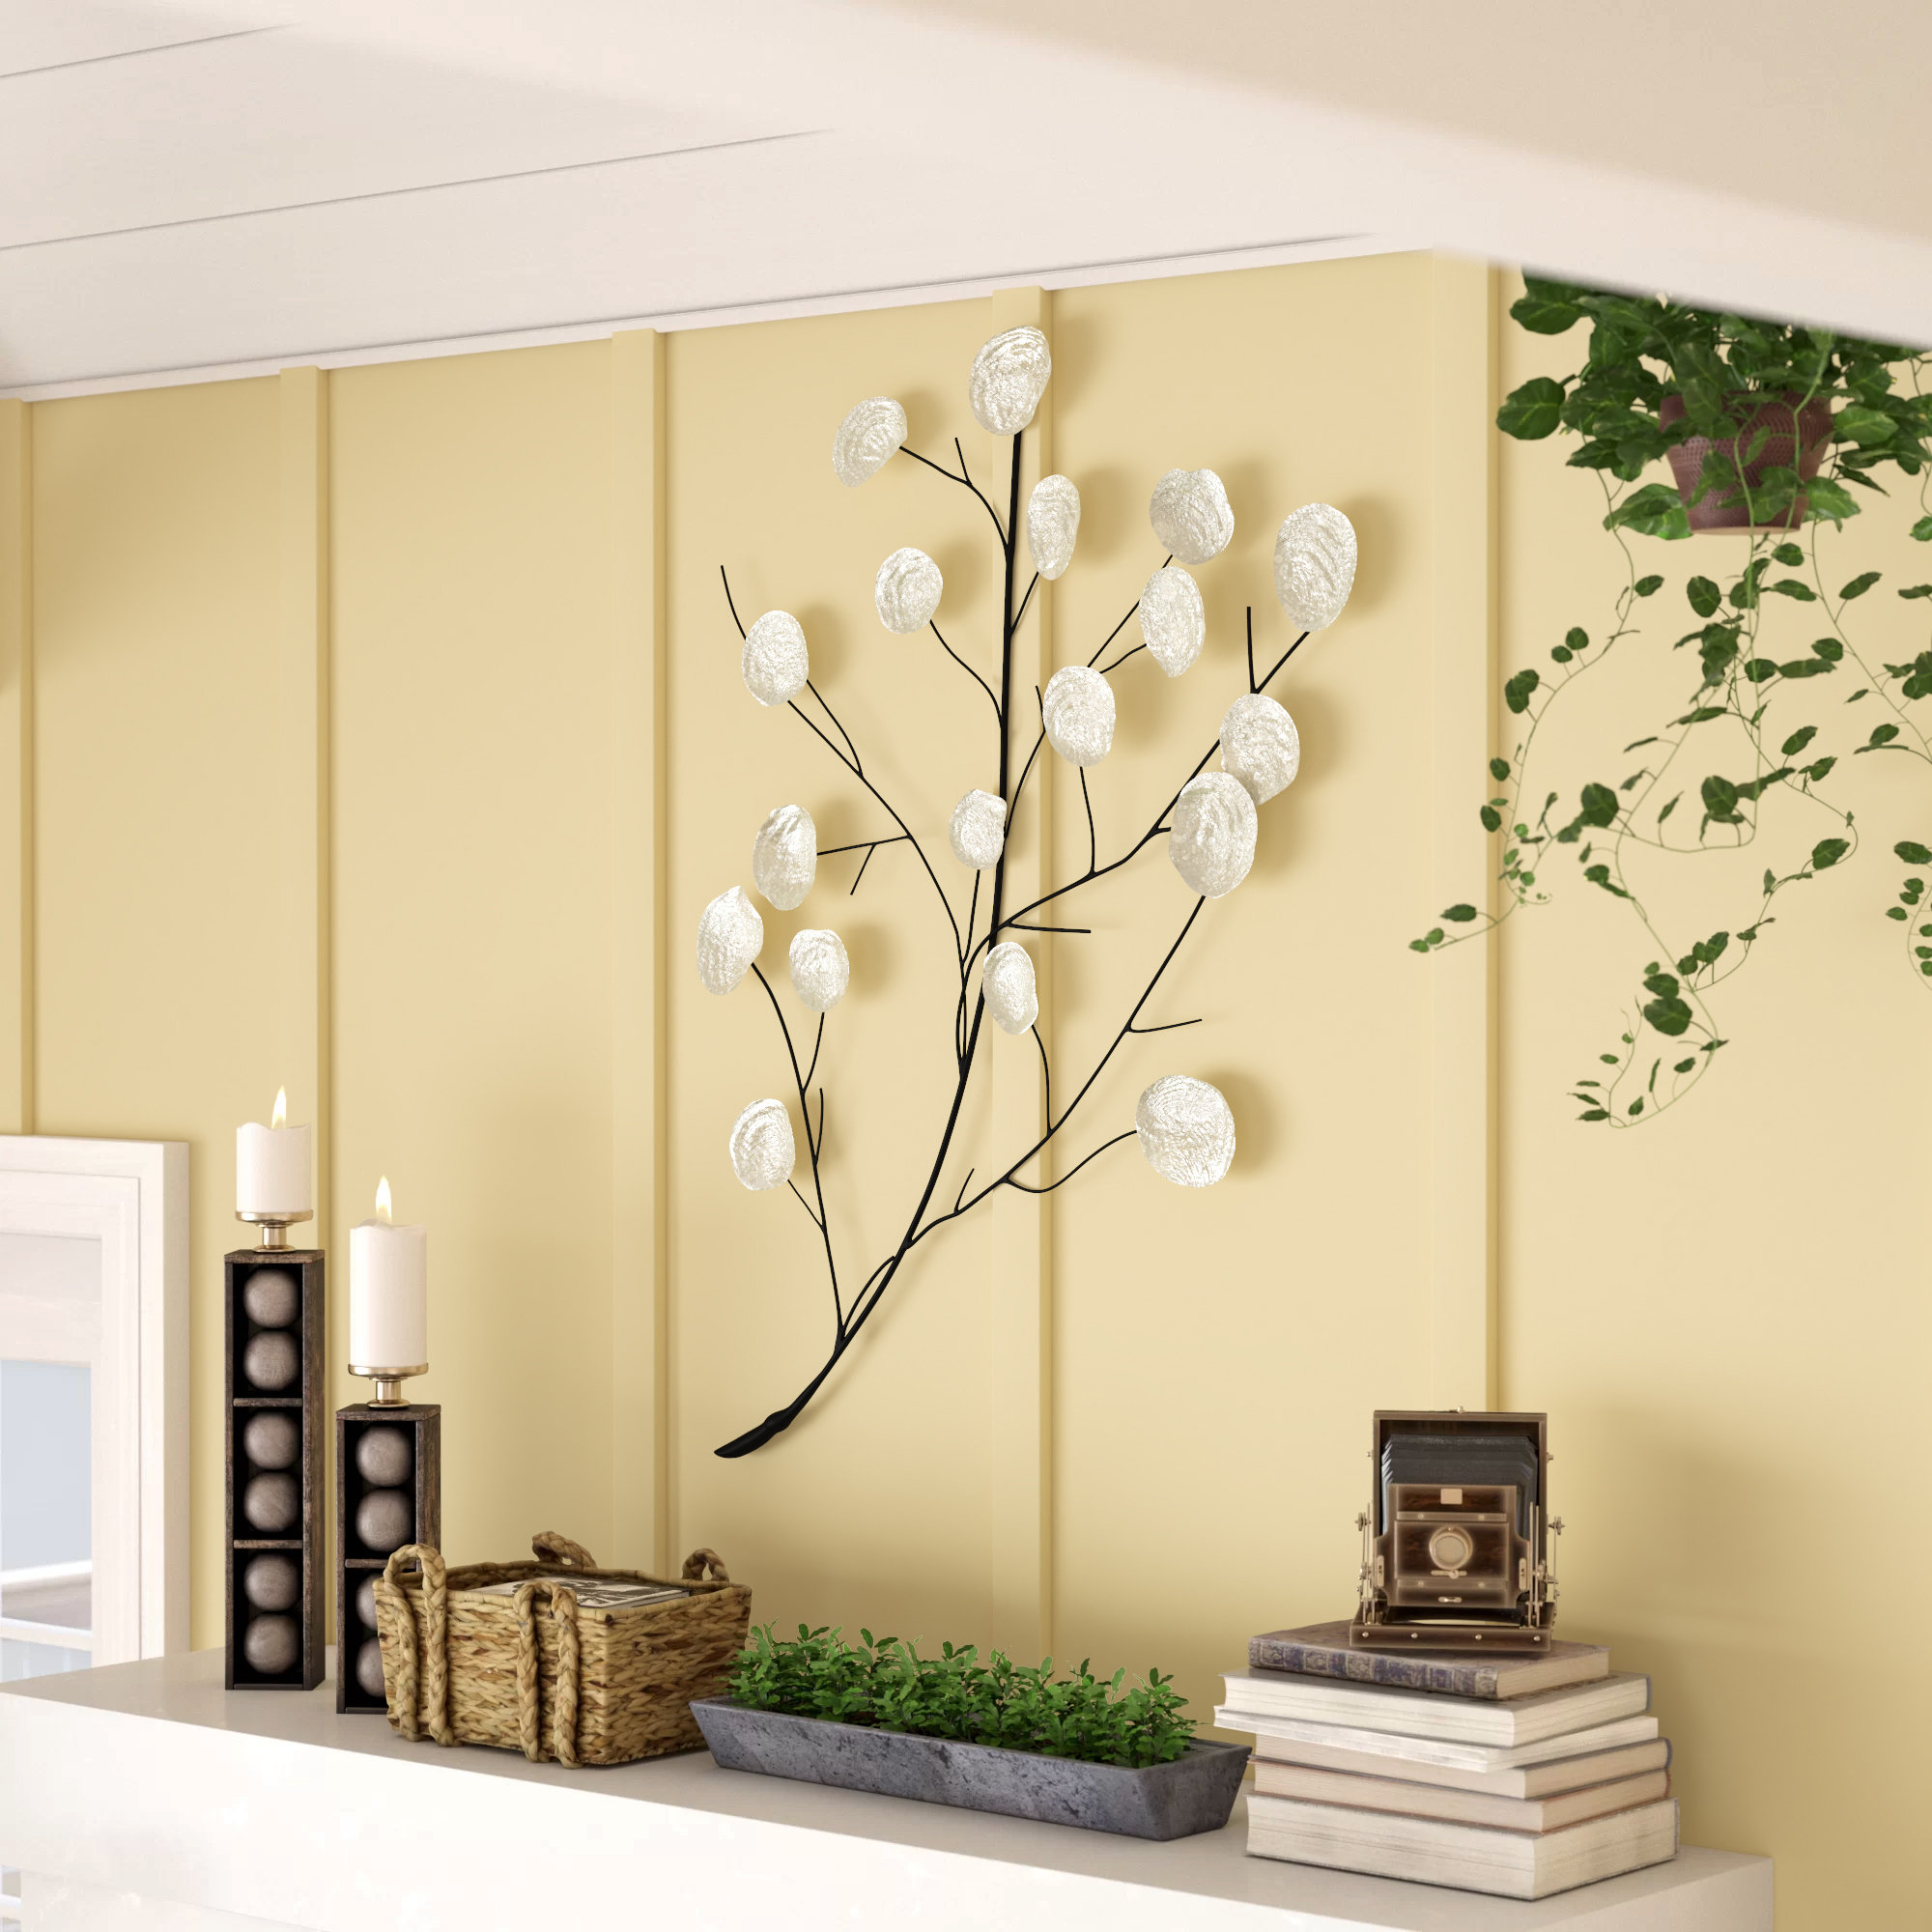 Eclectic Shell Leaf Wall Decor Intended For Tree Shell Leaves Sculpture Wall Decor (Photo 9 of 30)